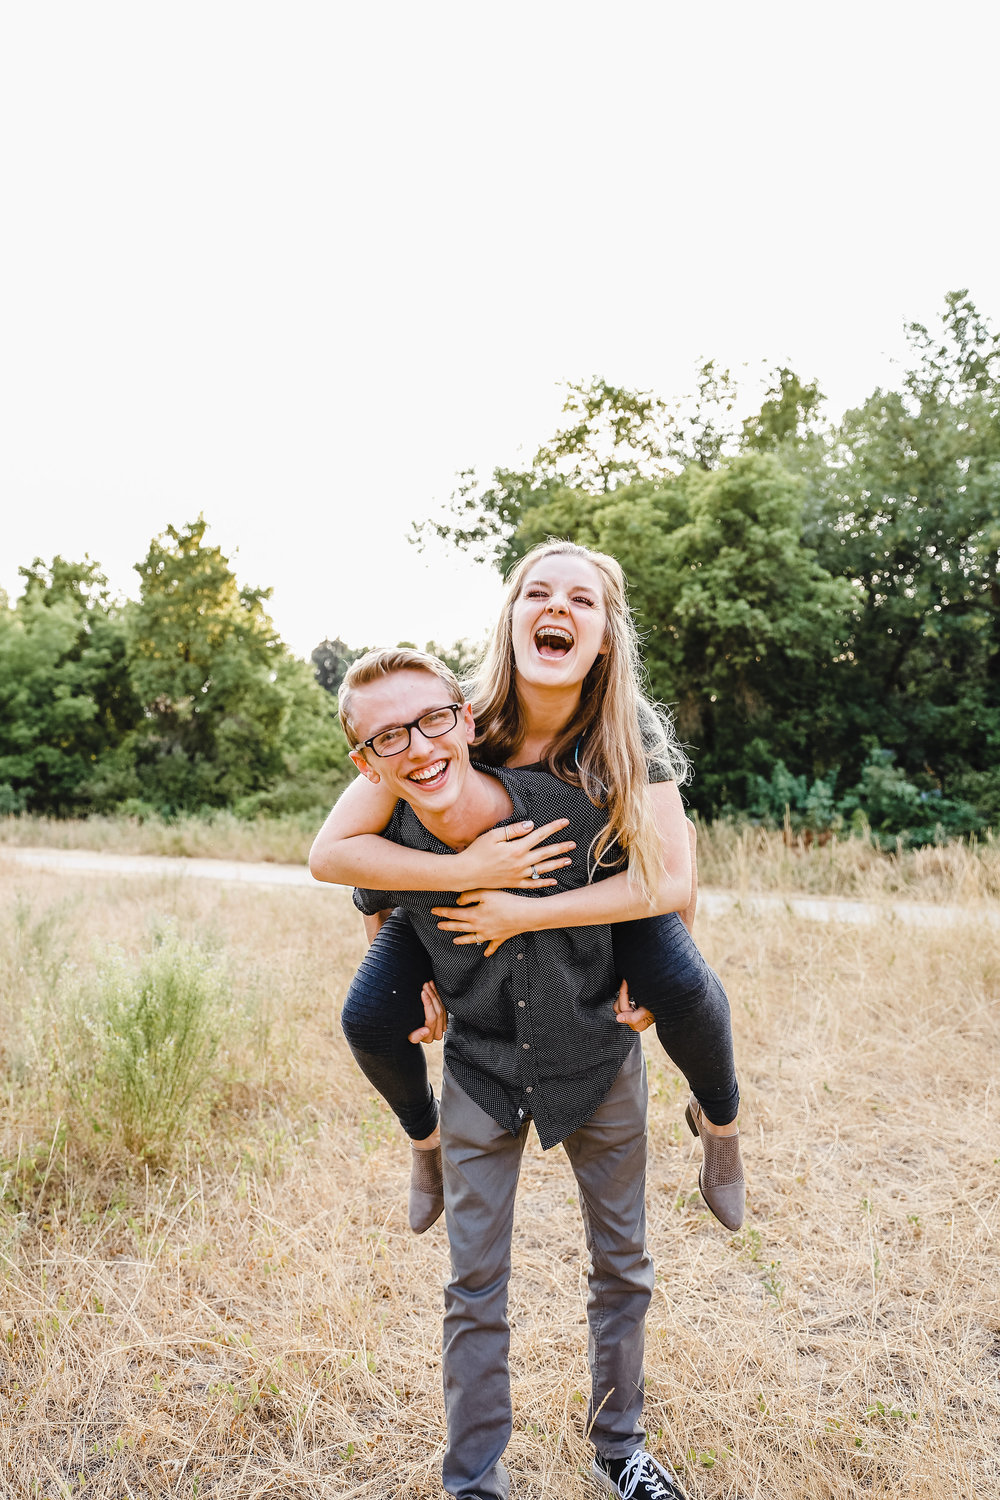 professional couples photographer in logan utah smiling laughing piggy back playful